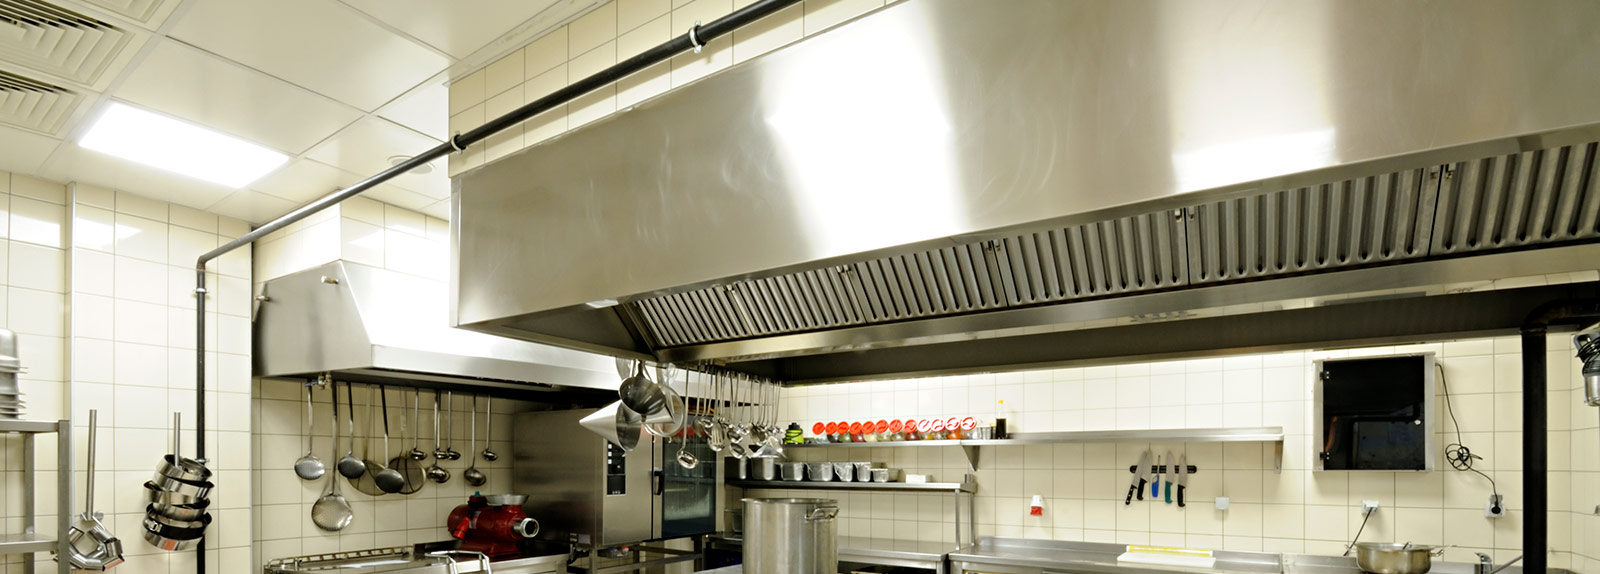 Restaurant hood systems kitchen ventilation ellsworth